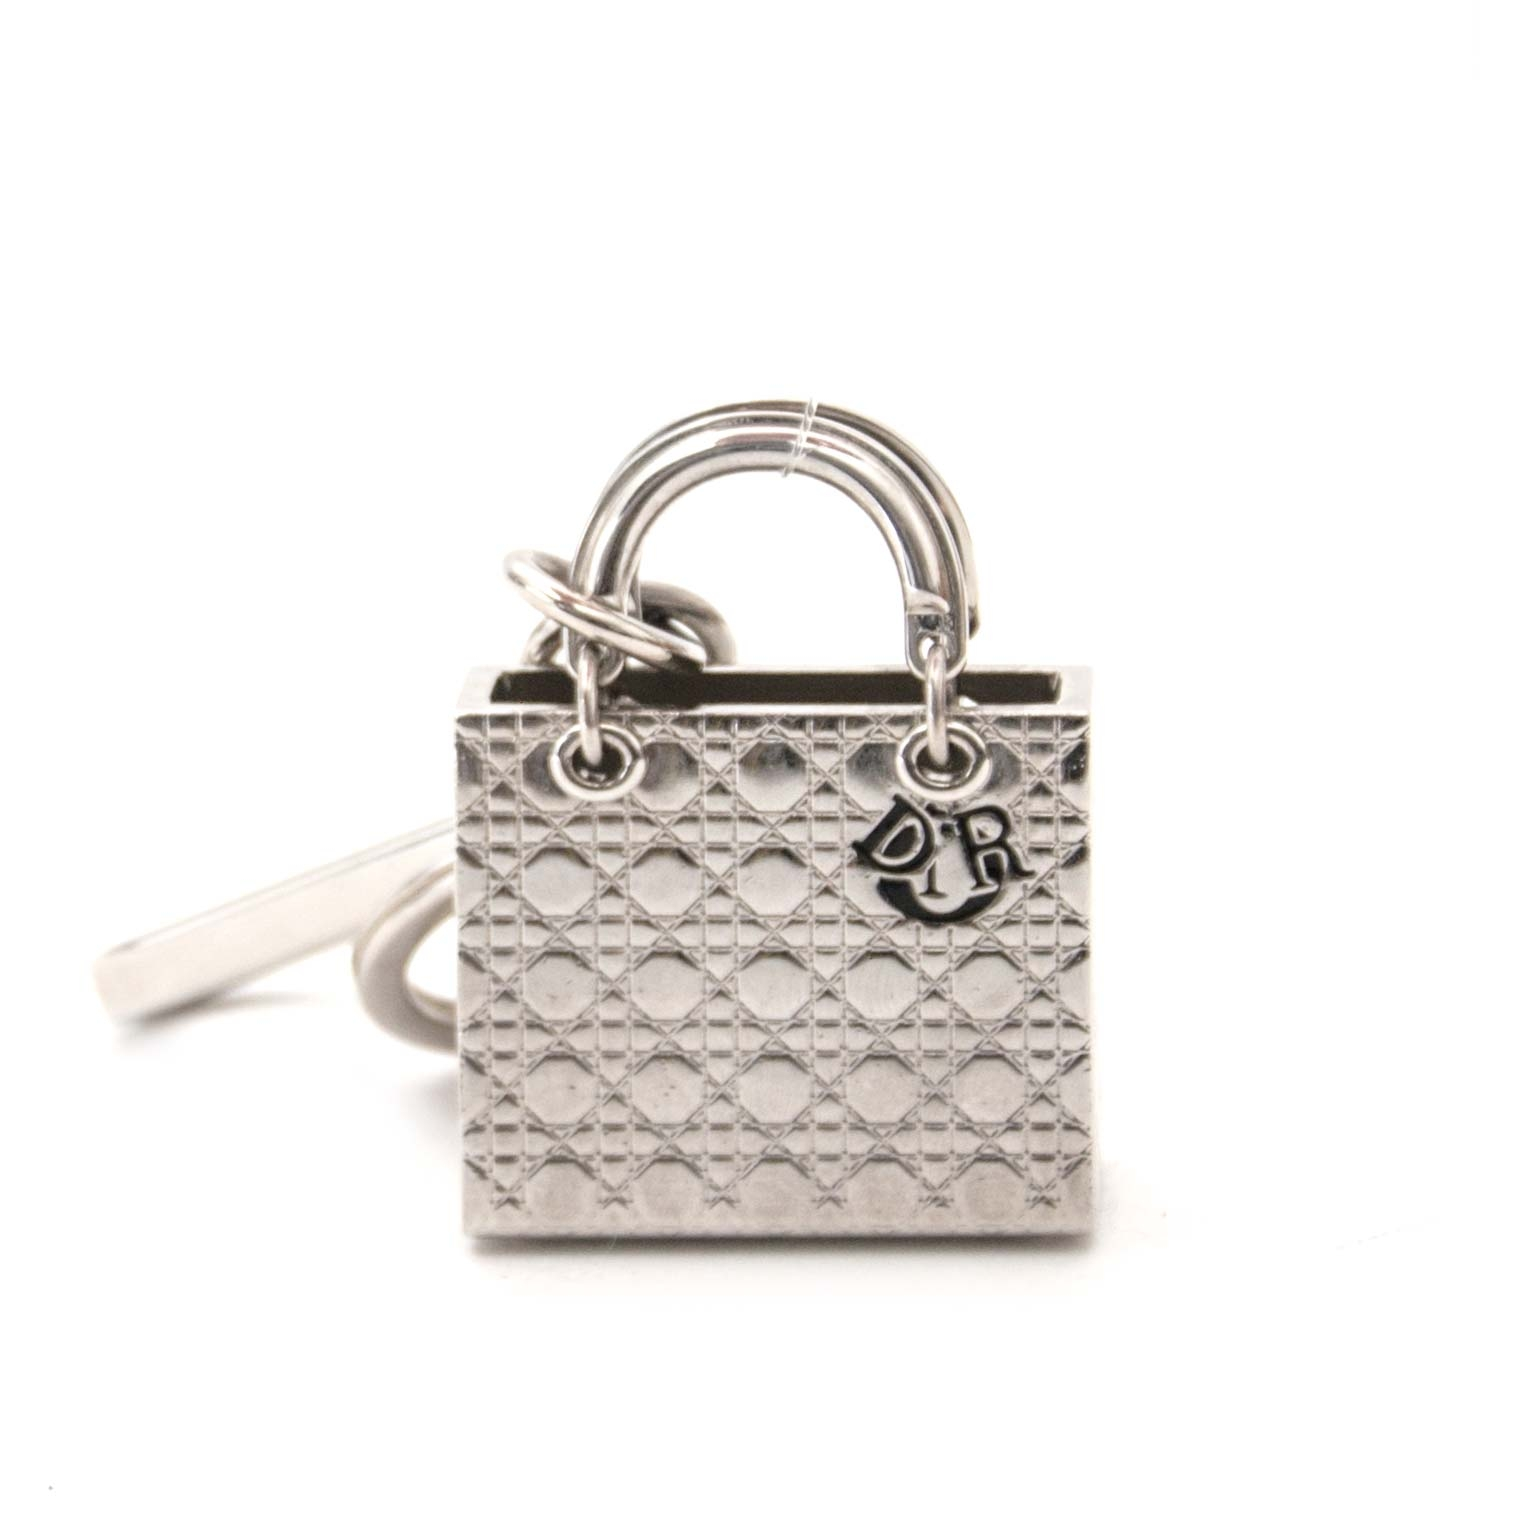 Dior Silver Lady Dior Bag Charm Buy authentic designer Dior secondhand keichain charm at Labellov at the best price. Safe and secure shopping. Koop tweedehands authentieke Dior sleutelhanger bij designer webwinkel labellov.